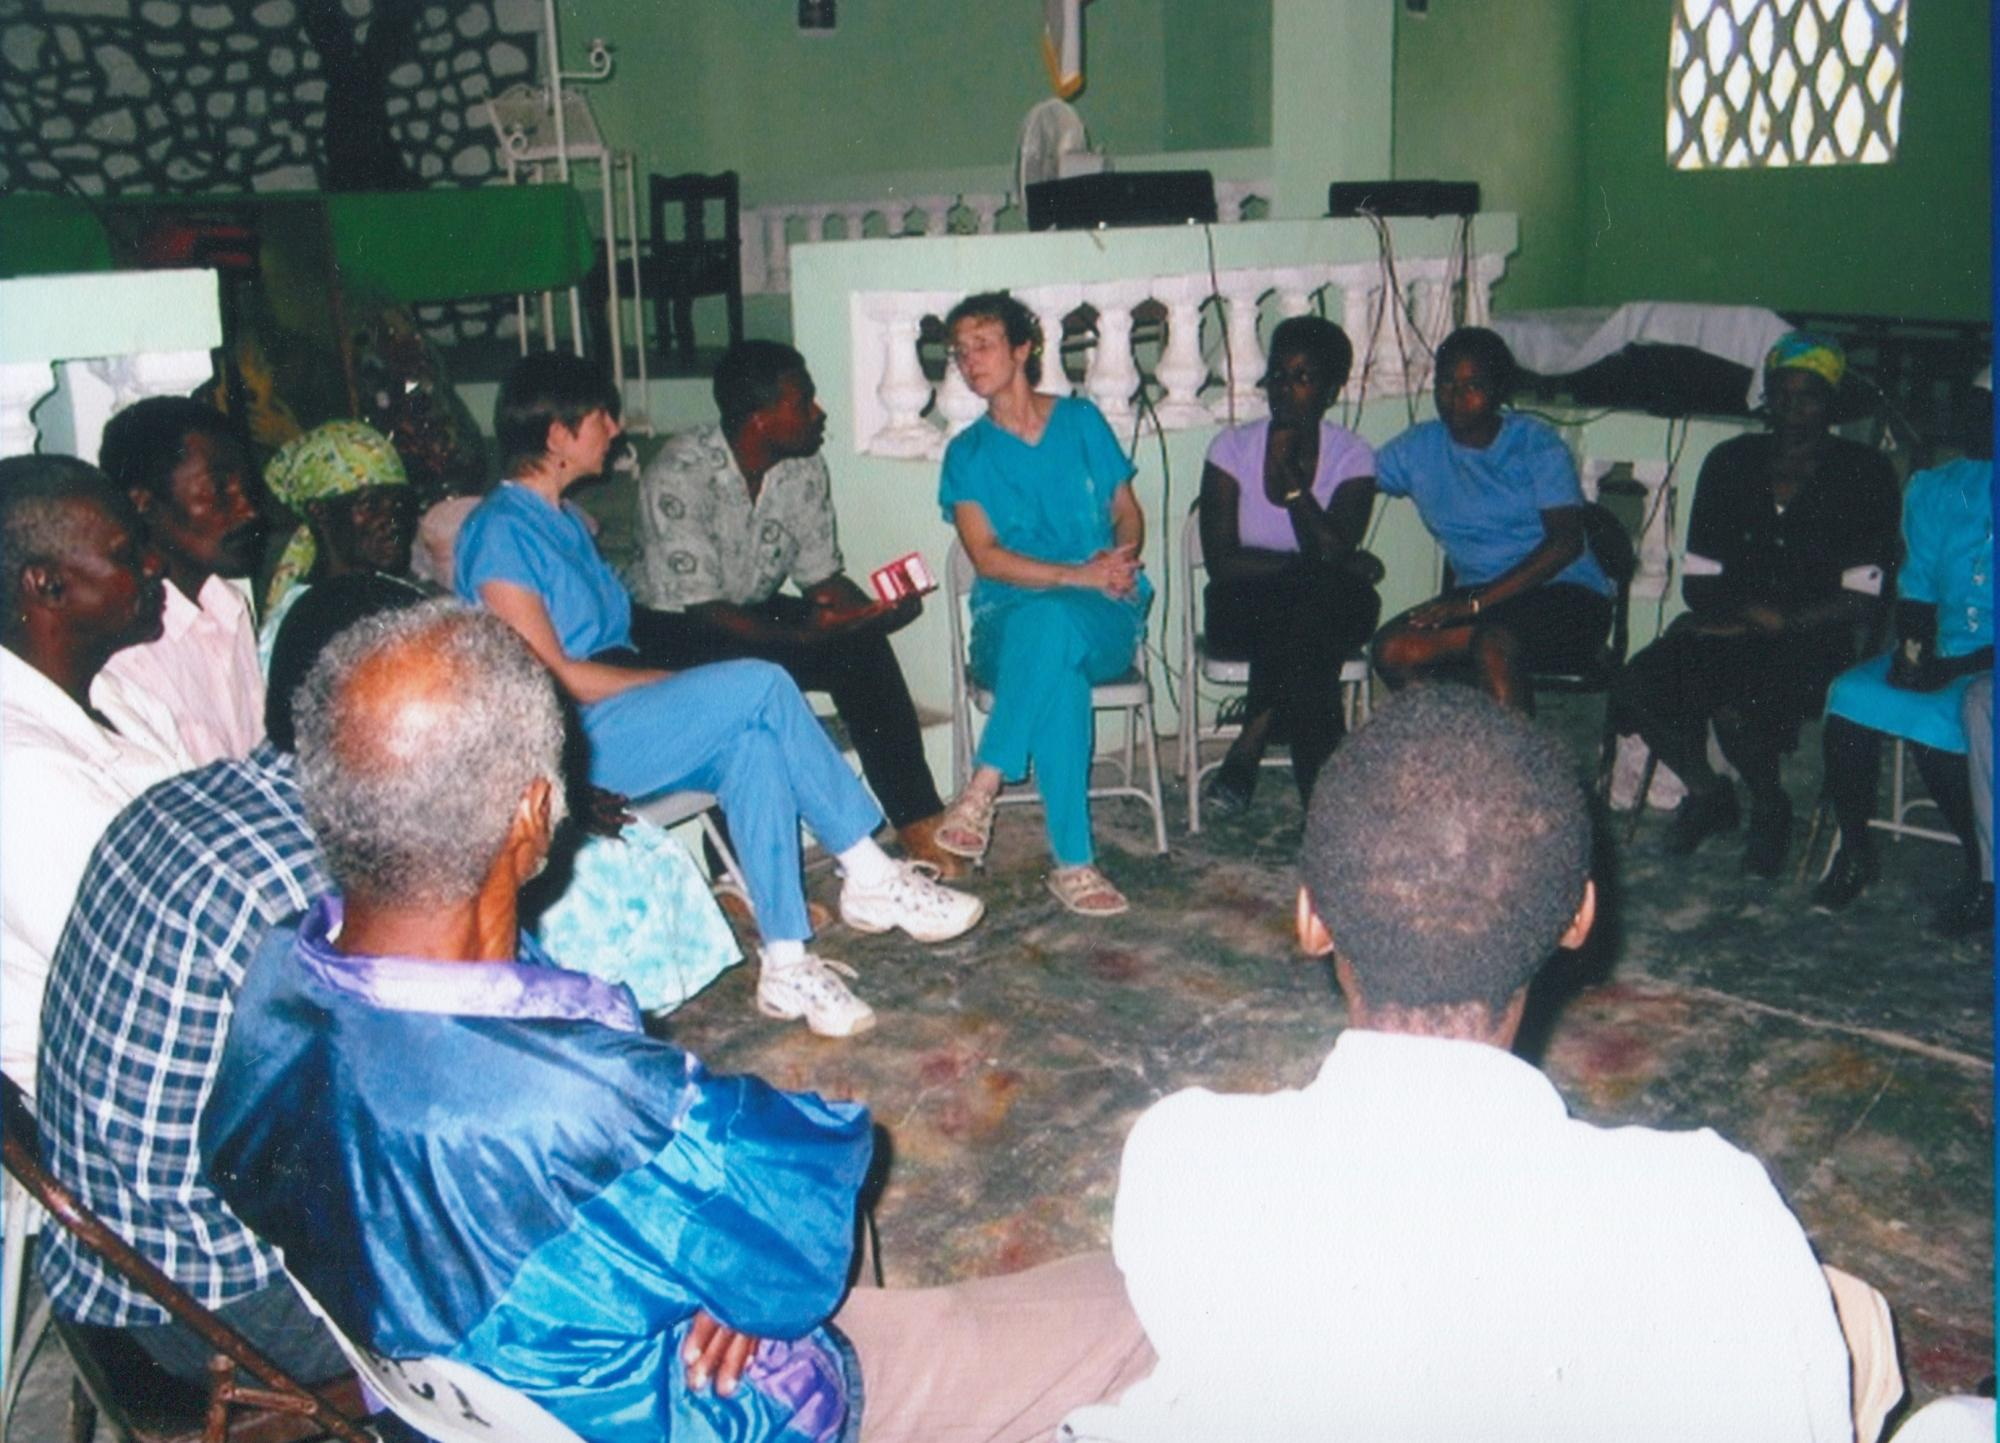 2001-2_Education_meeting_in_Thiotte_church_p_DrMM_image24.jpg